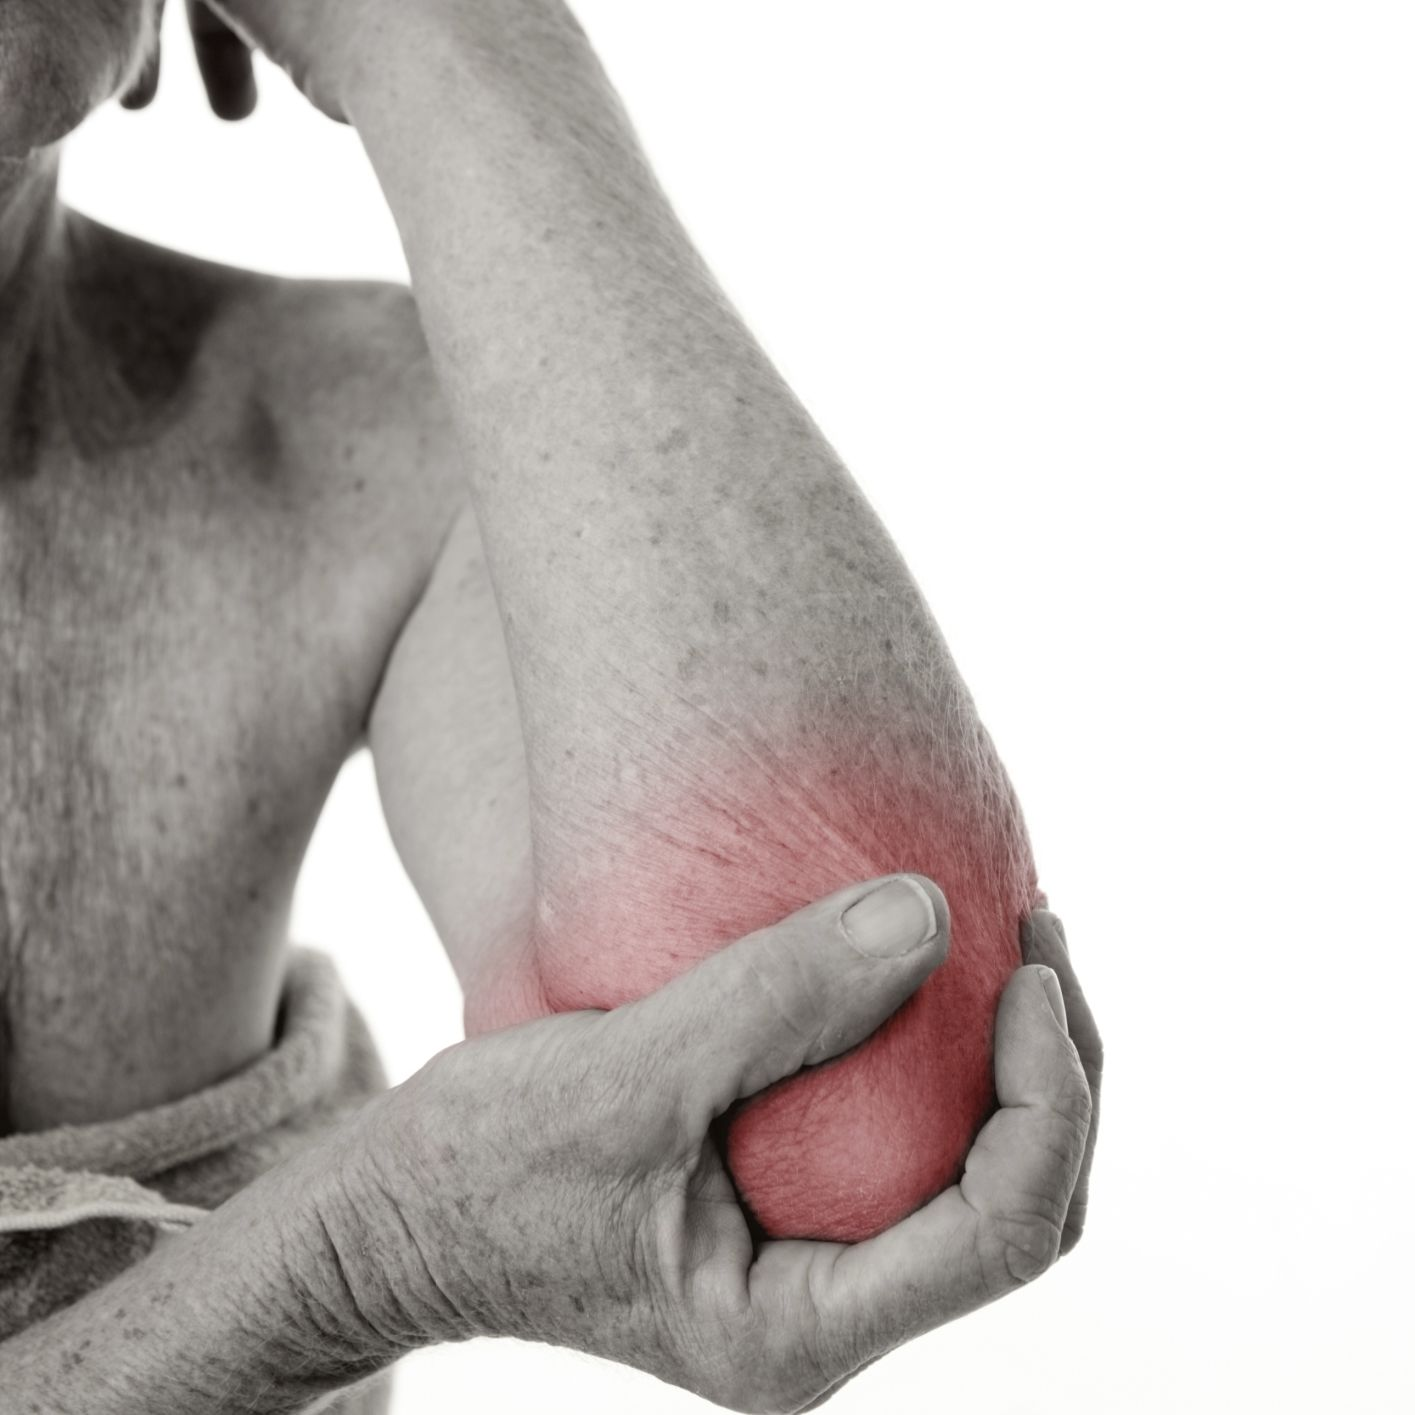 Symptoms Diagnosis And Treatments For Tennis Elbow